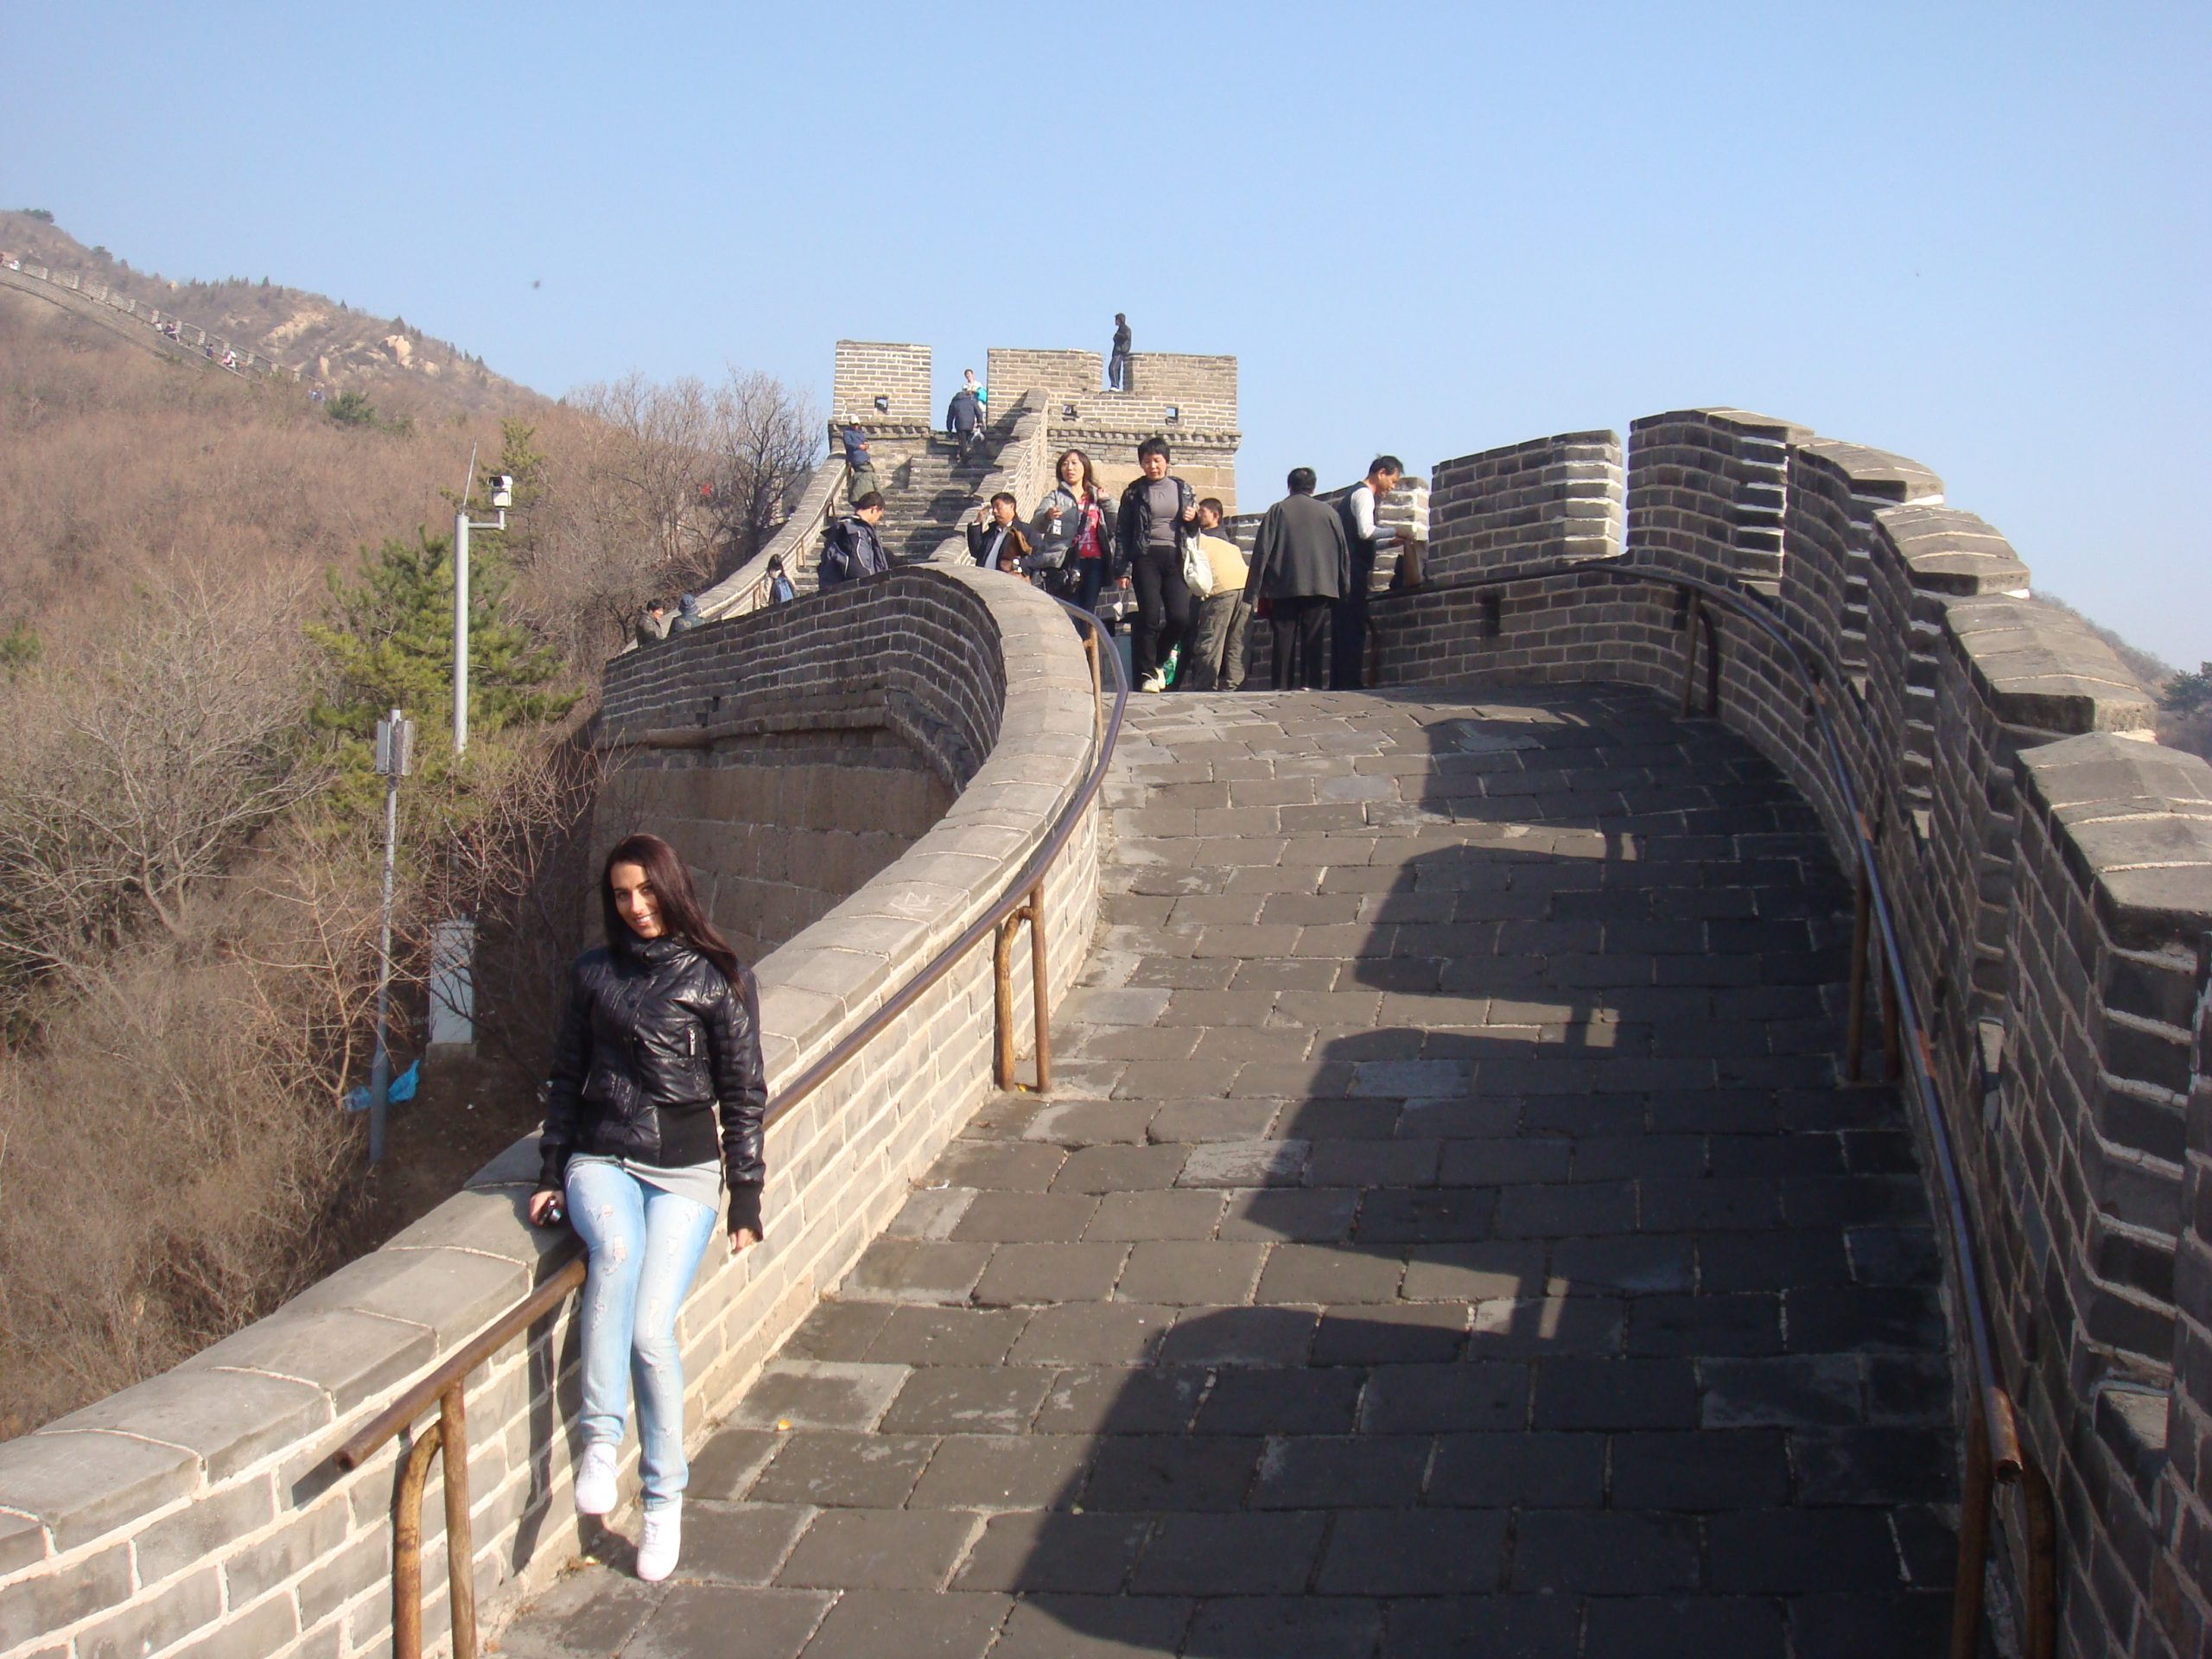 Sitting on the Great Wall of China